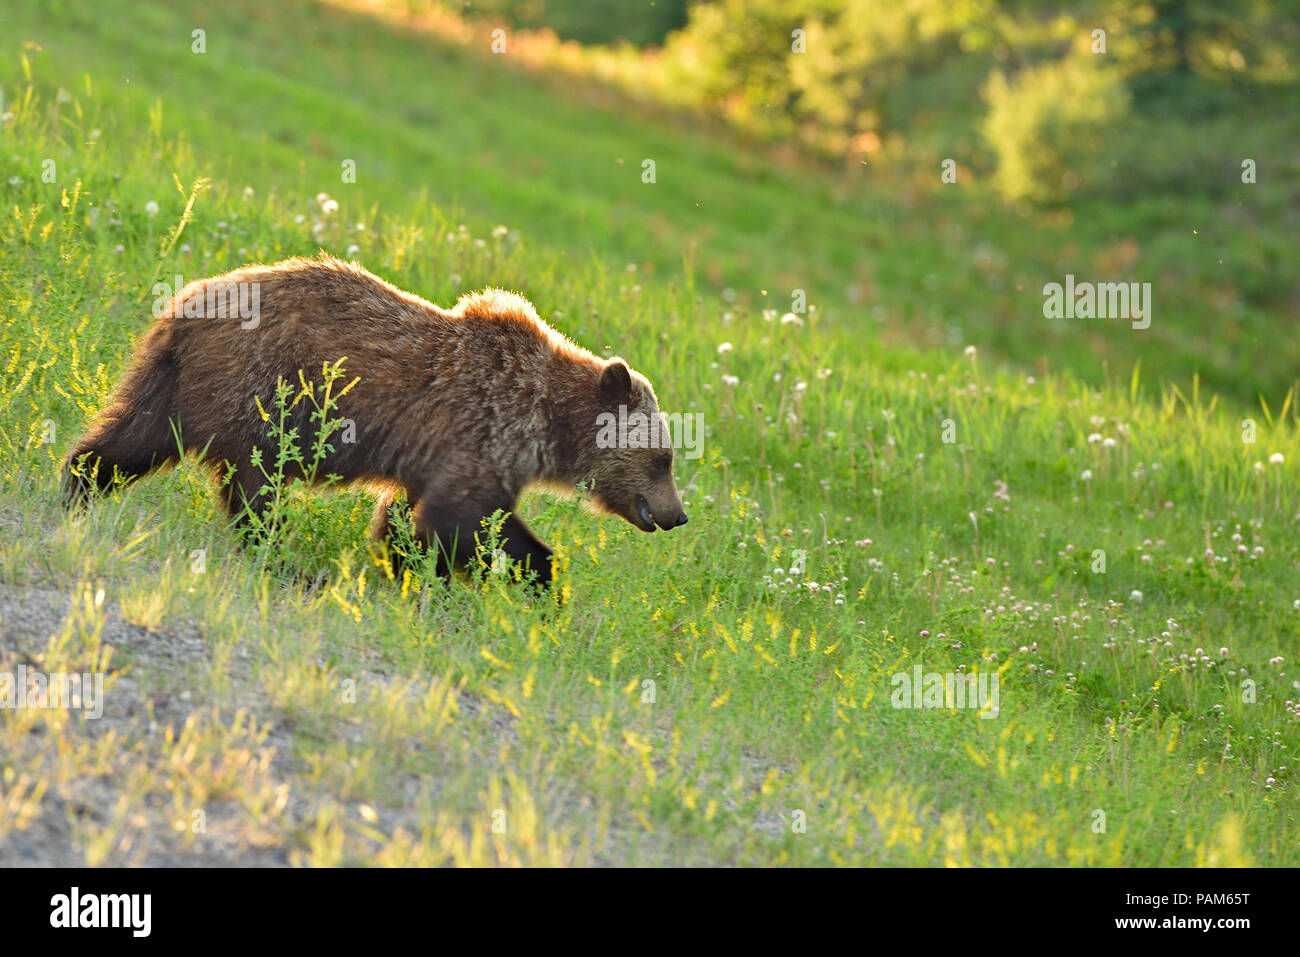 Grizzly bear walking - photo#34